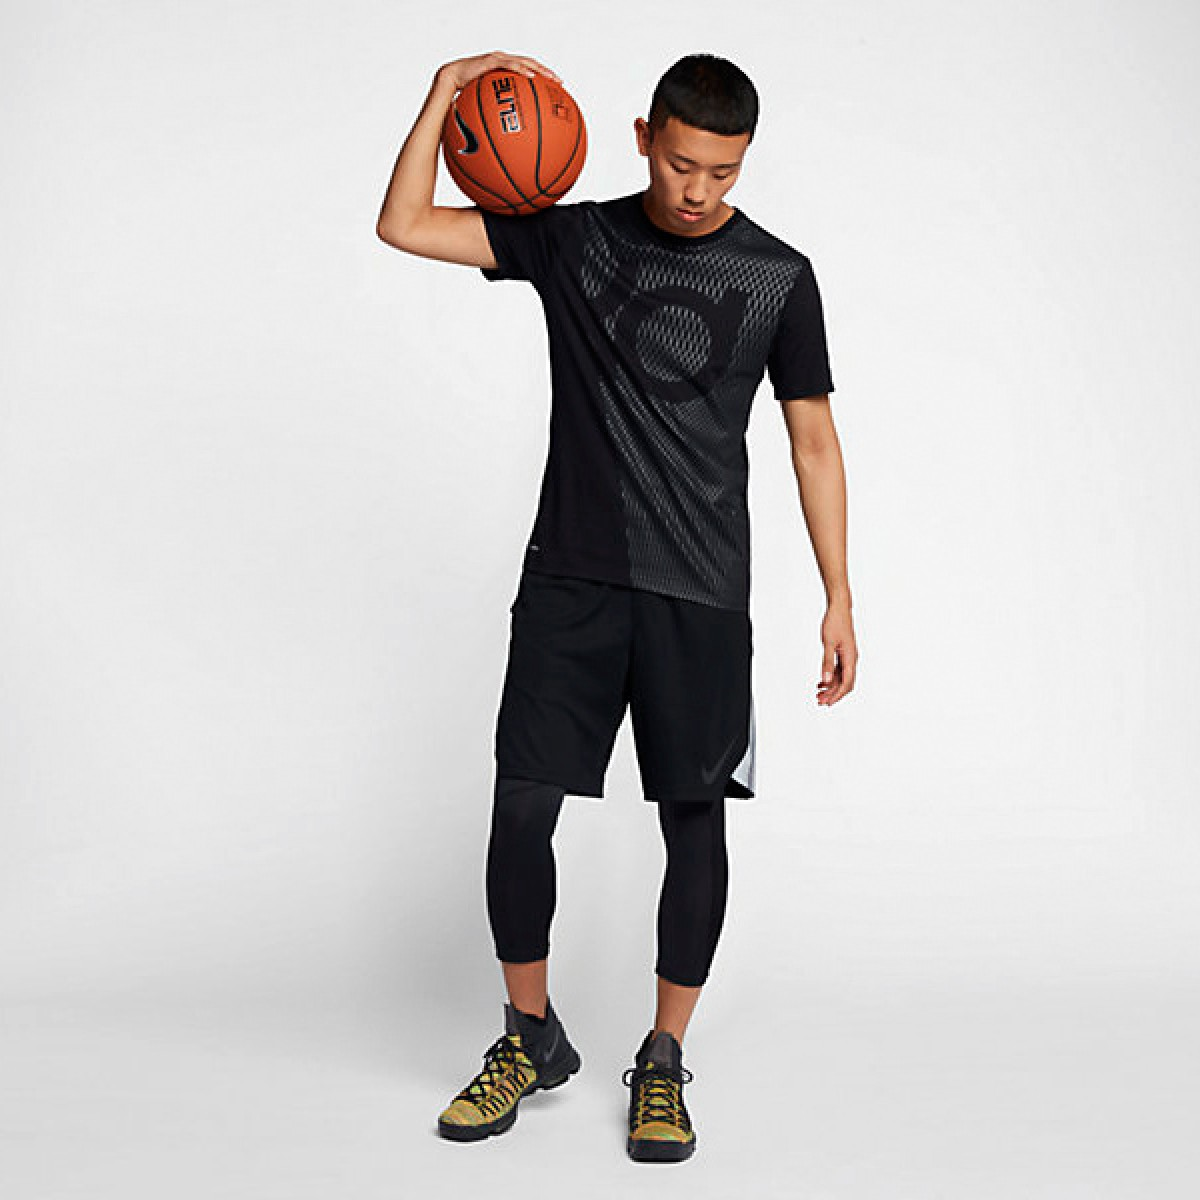 Nike KD Elite Short 'Black' 855837-010